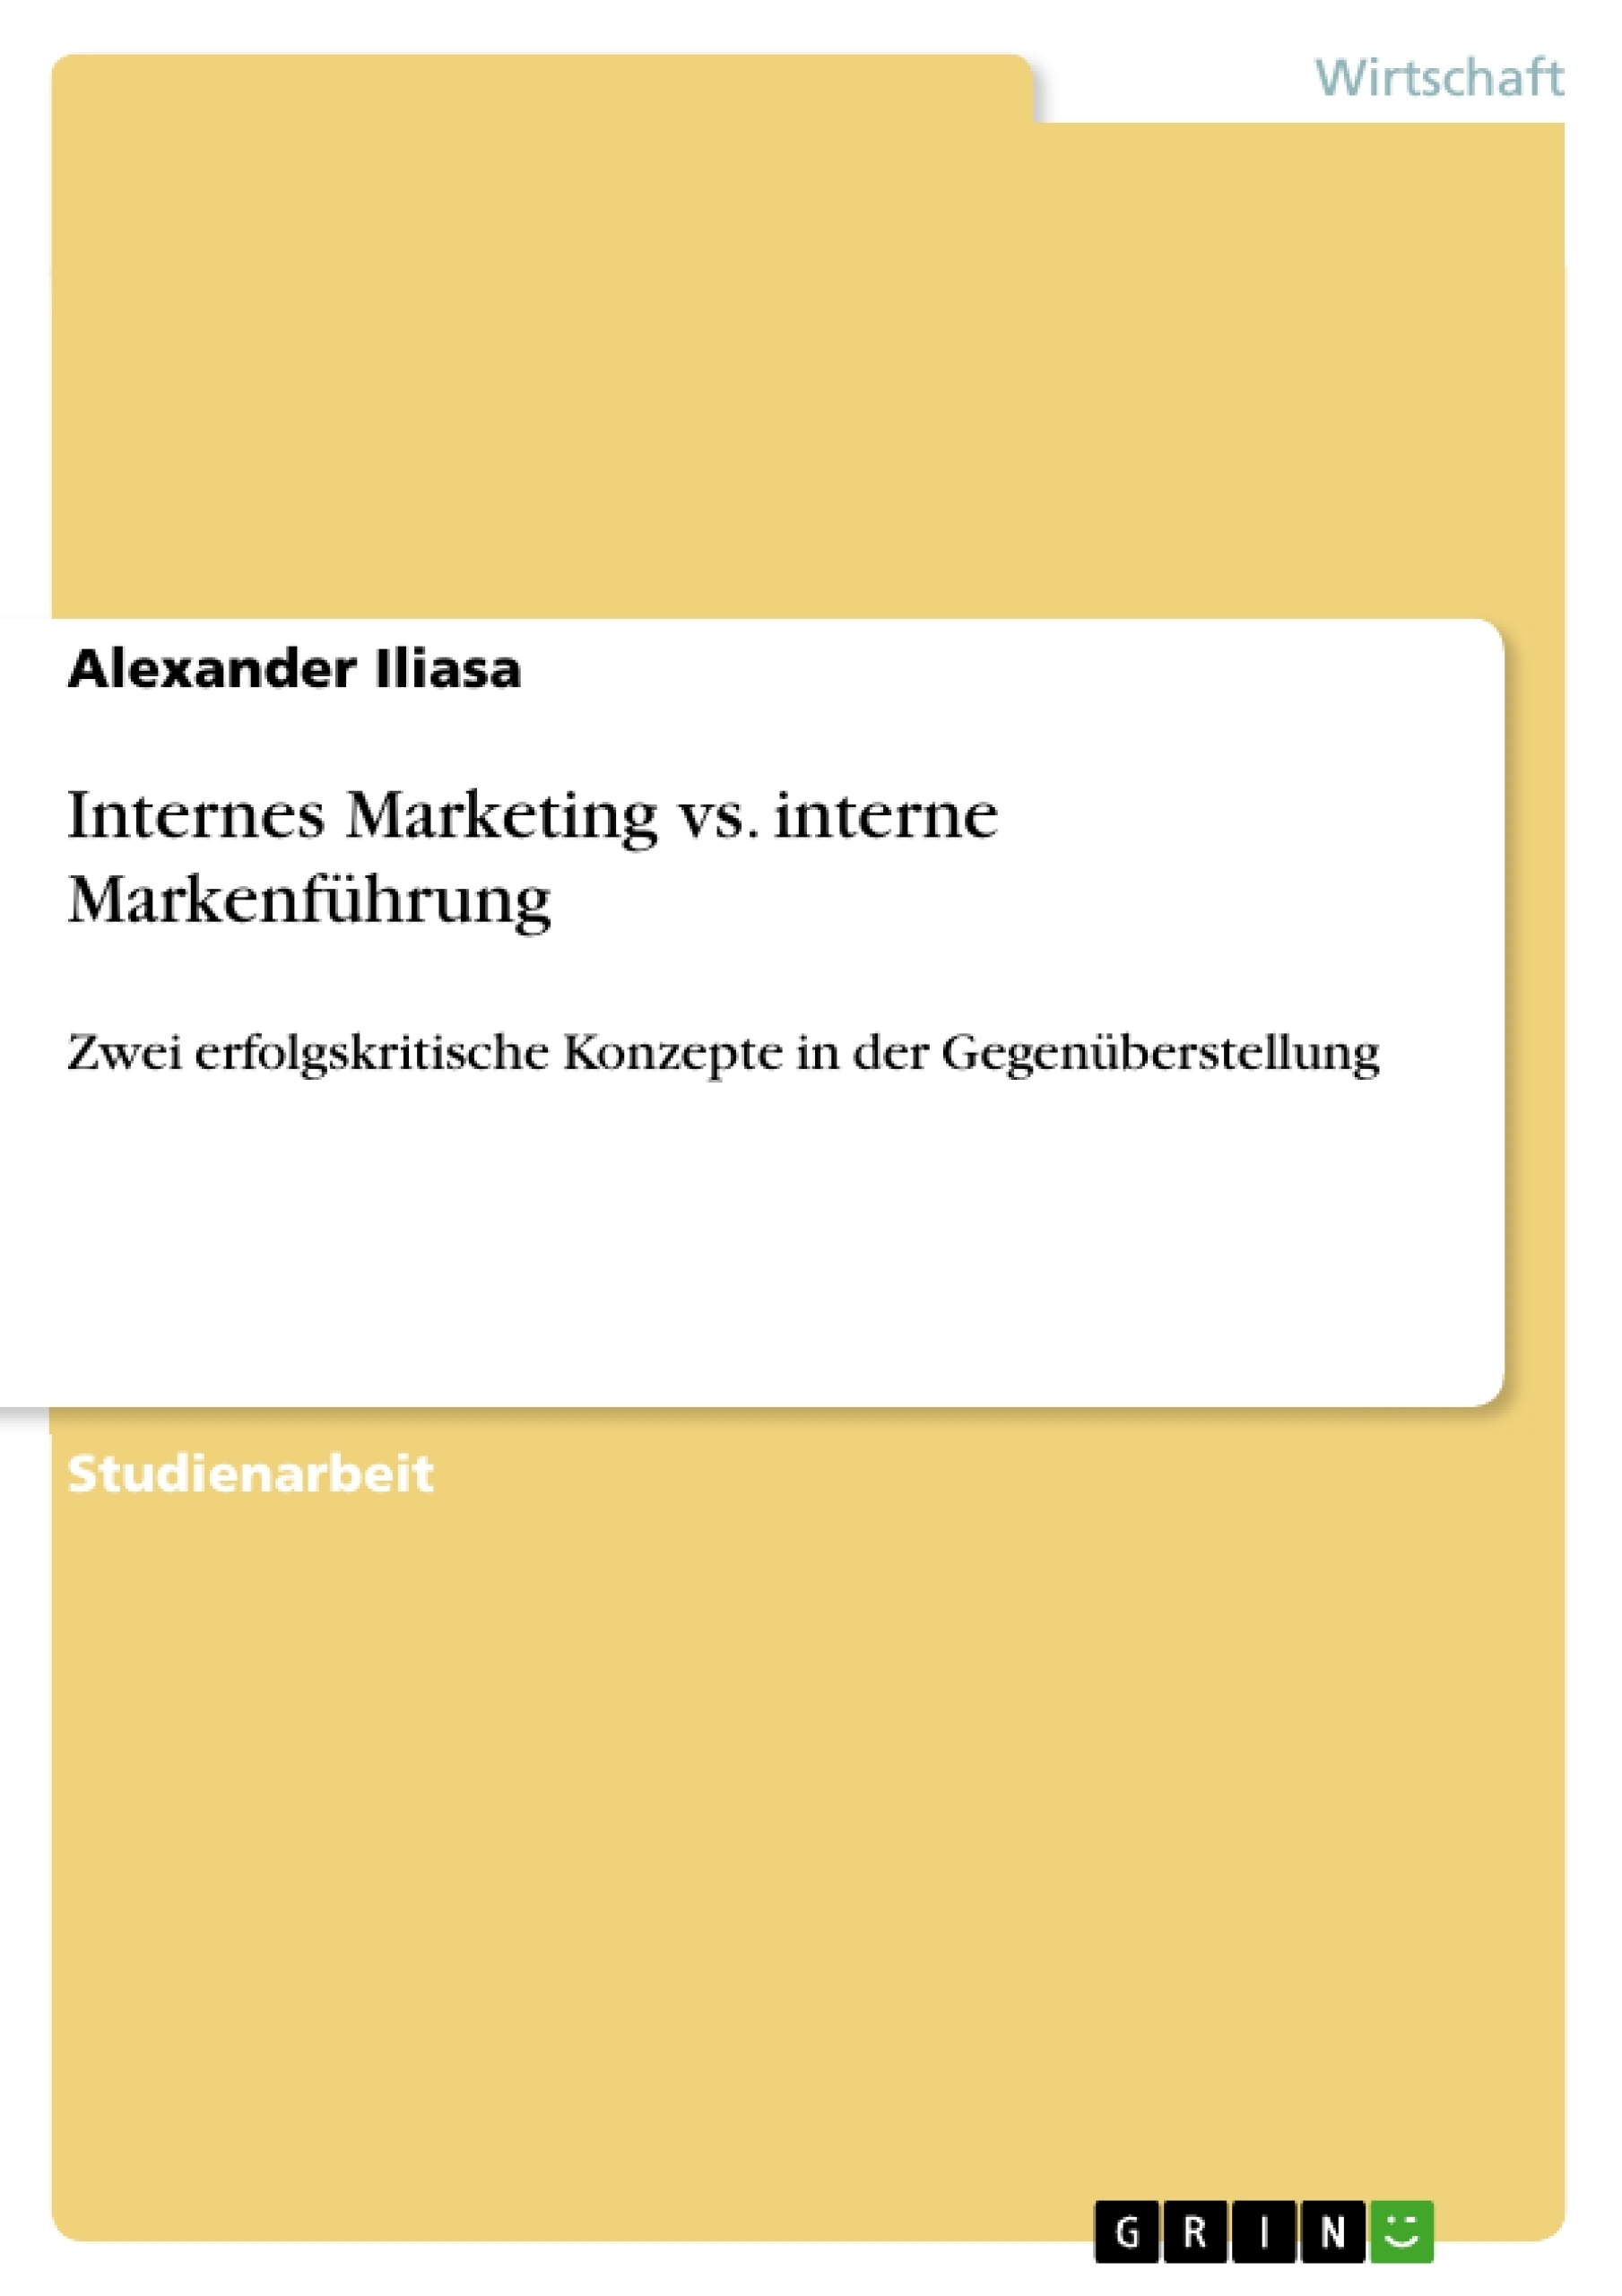 Titel: Internes Marketing vs. interne Markenführung